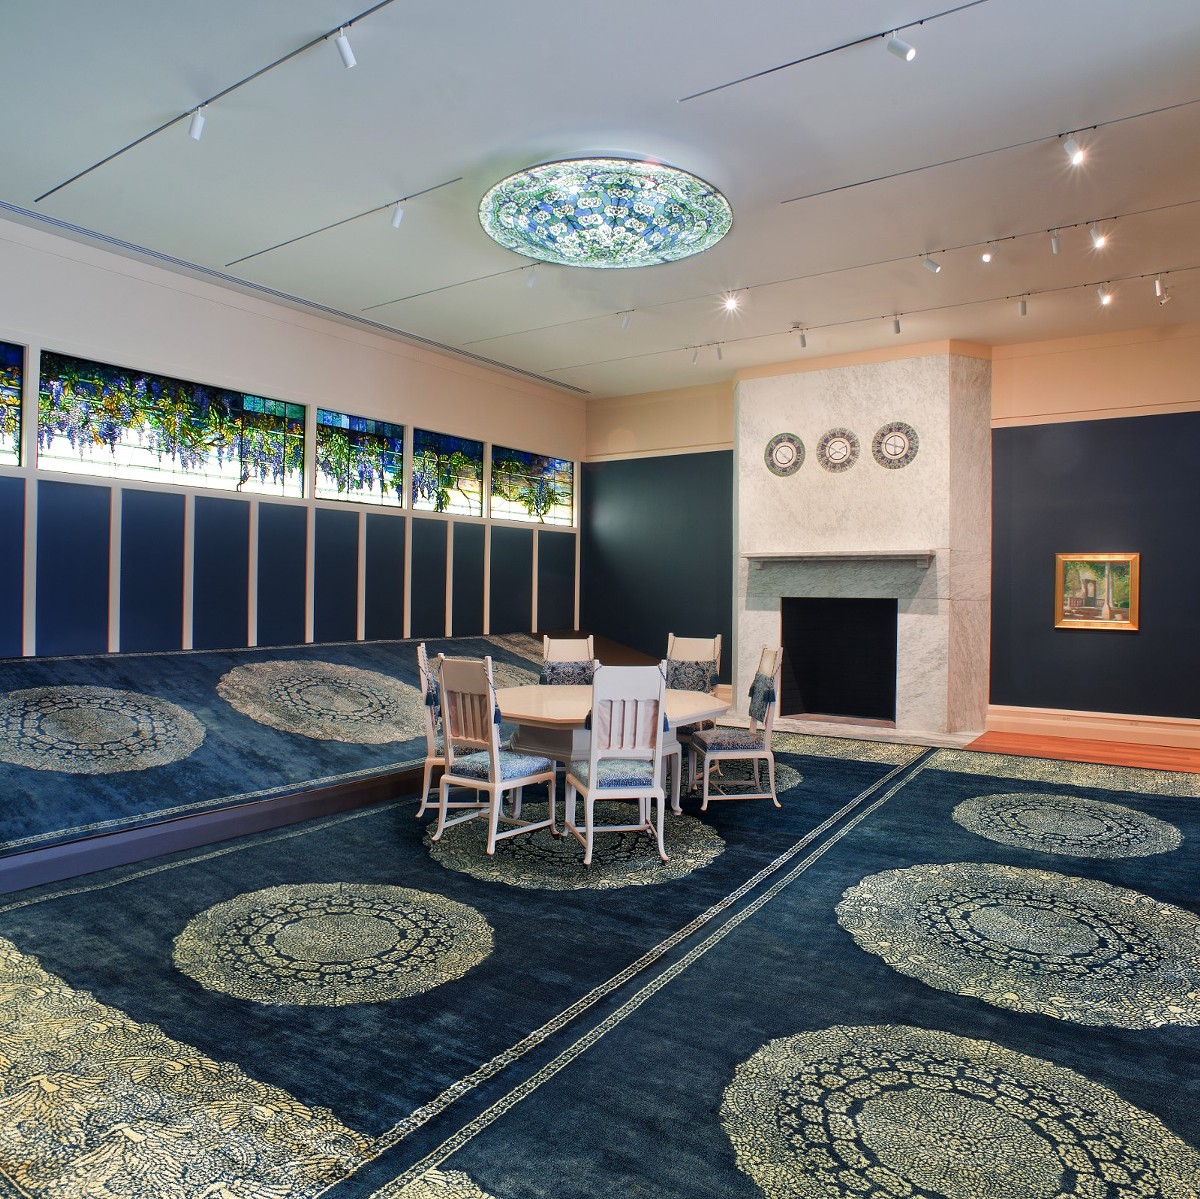 """The Morse's two summer programs focus on interior design and decoration during the late 19th and early 20th centuries. Pictured: The dining room in the permanent exhibition """"Louis Comfort Tiffany's Laurelton Hall."""""""